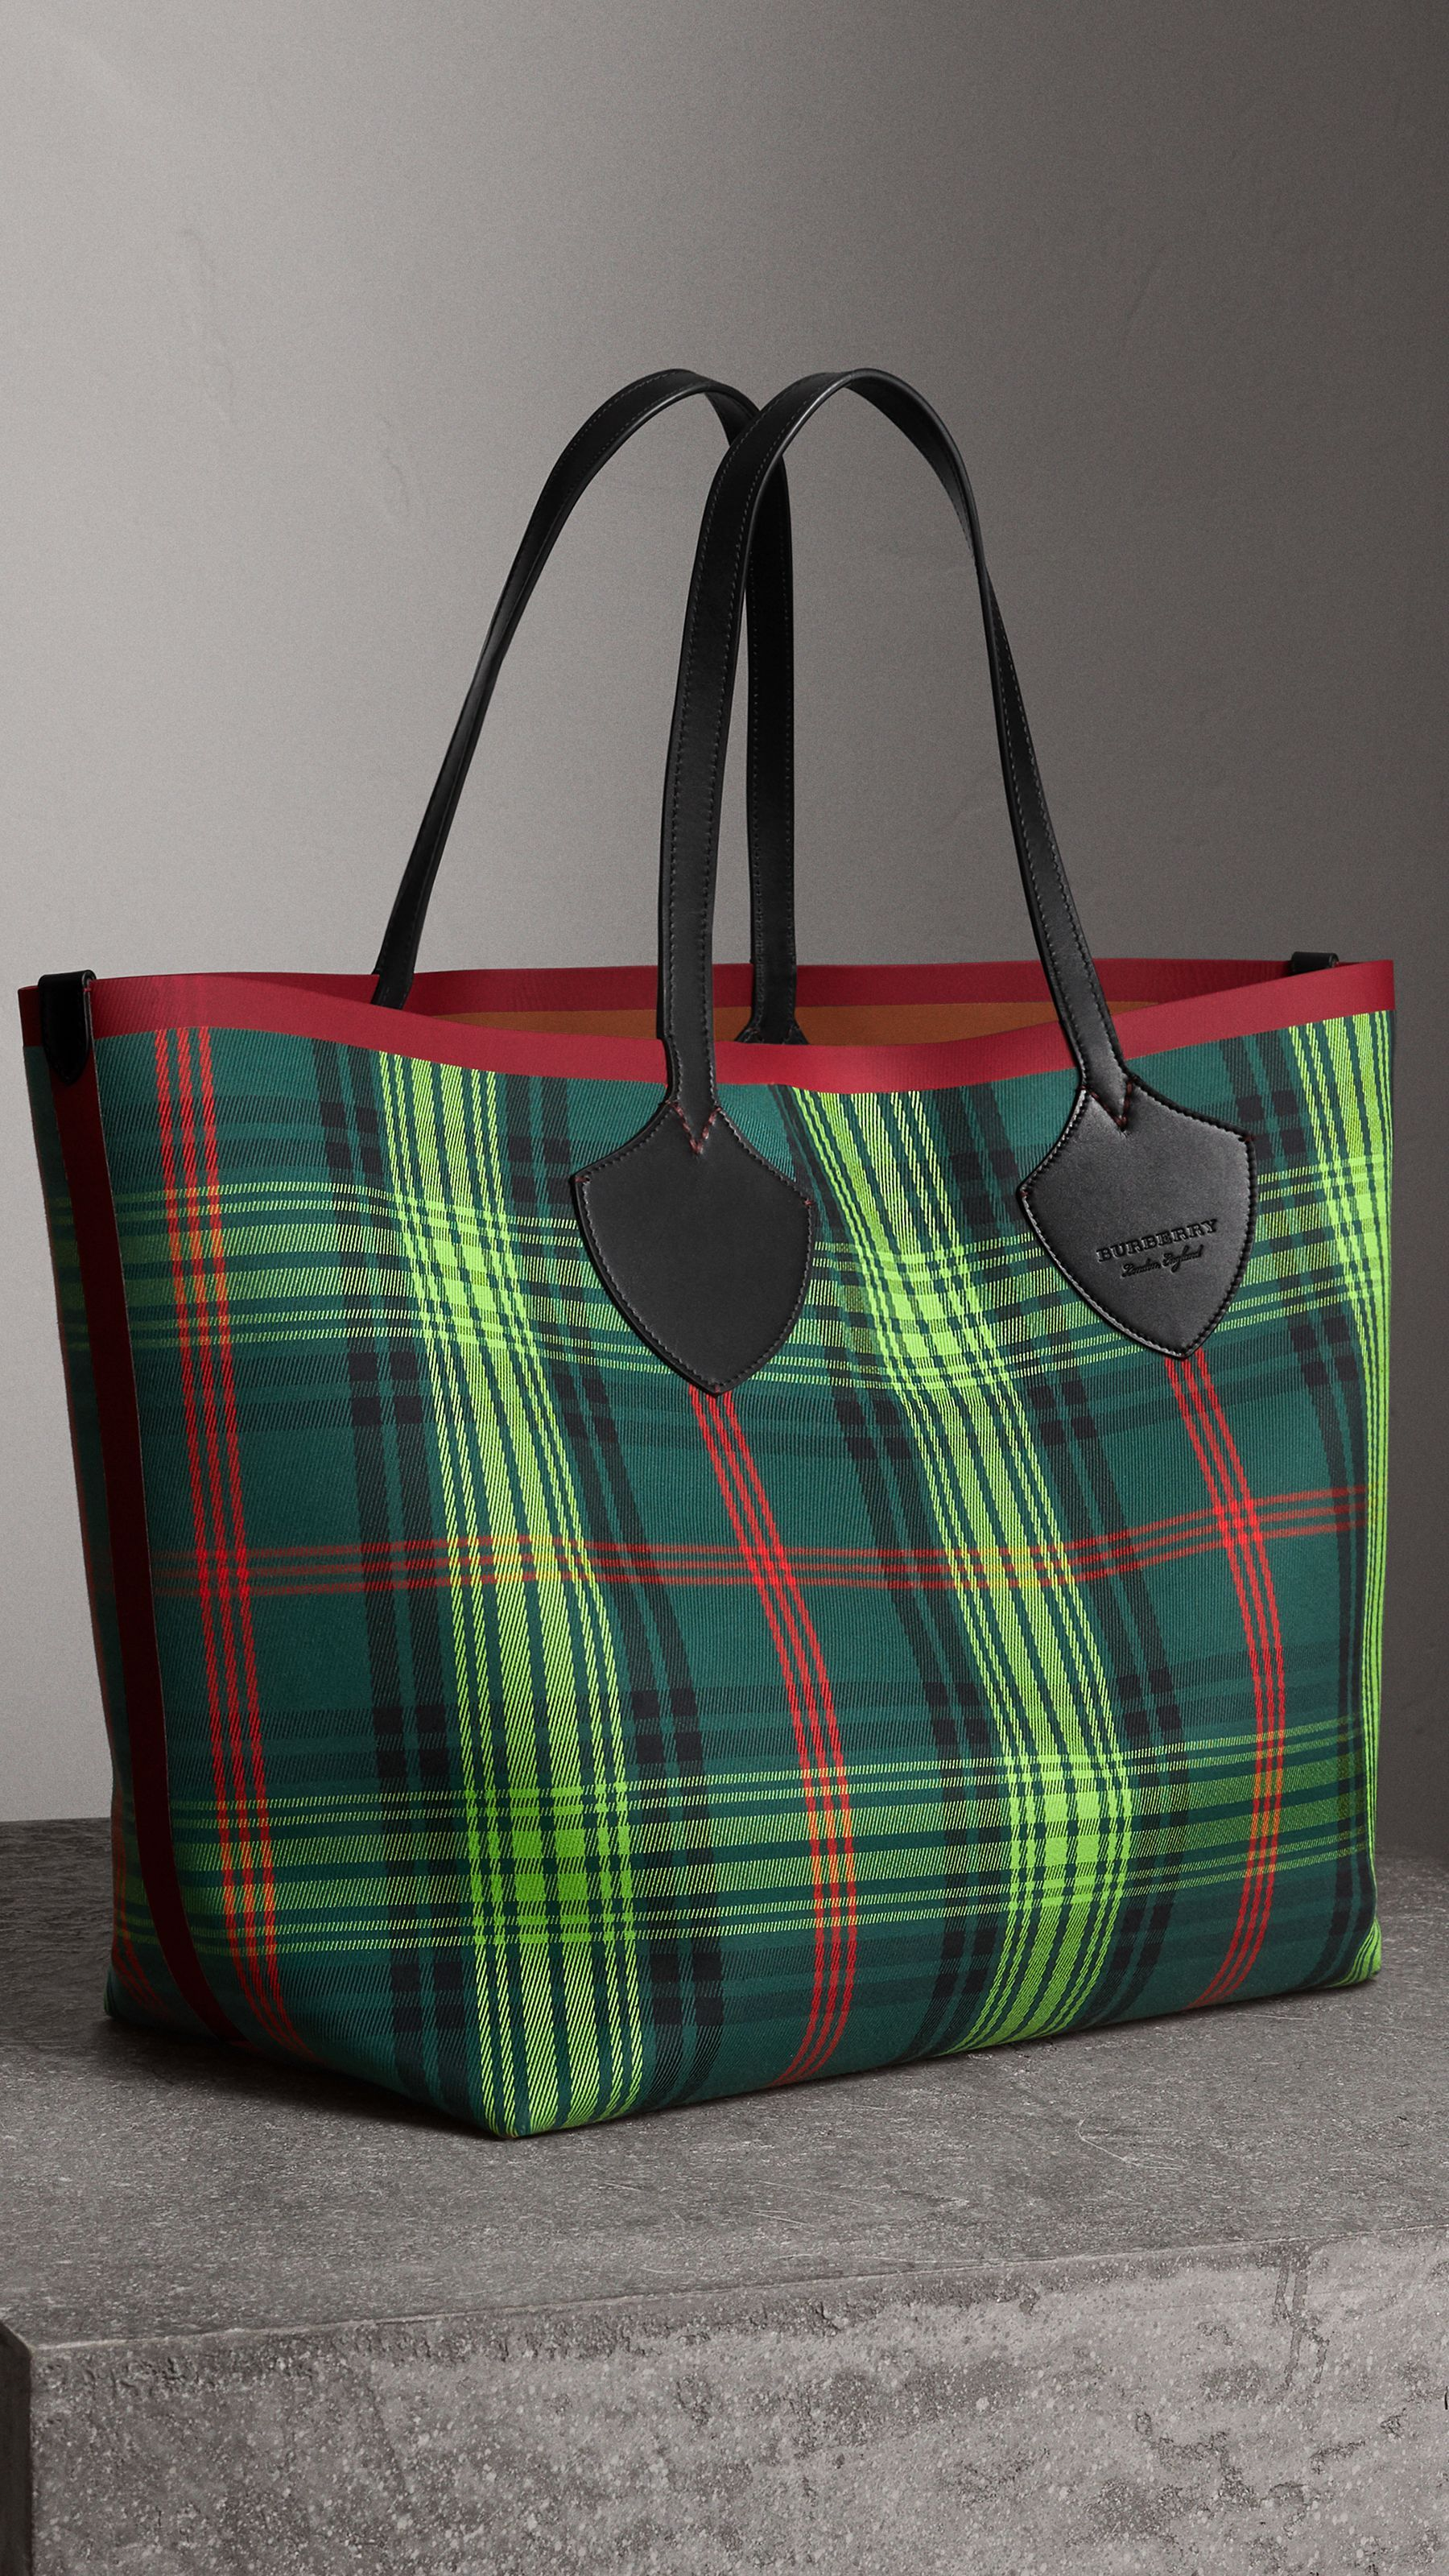 0d013186e083df The Giant Reversible Tote in Tartan and Leather in Tan/pine Green | Burberry